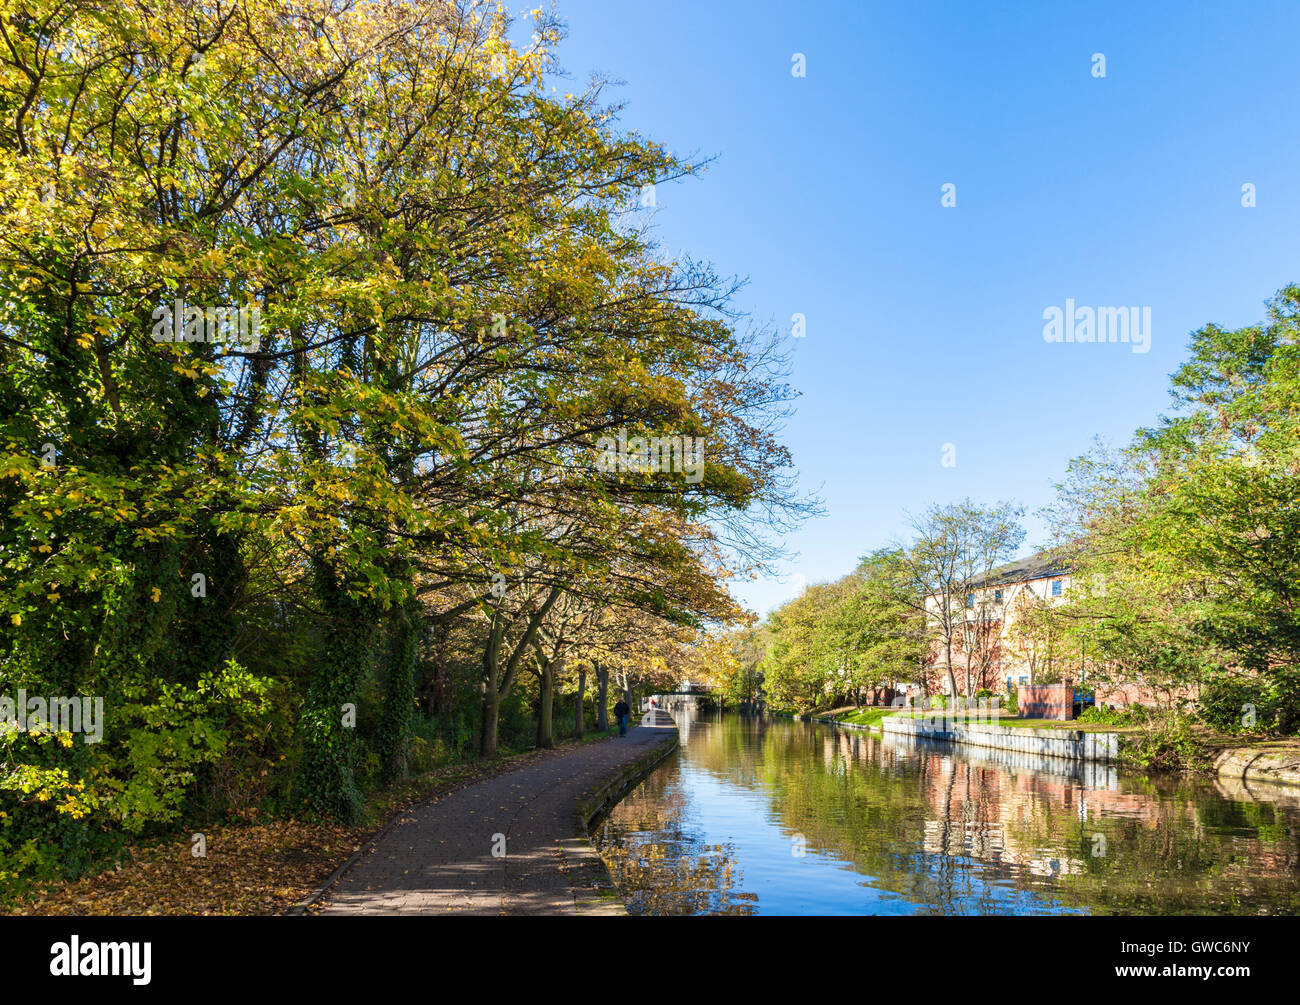 Trees in Autumn on the Nottingham and Beeston canal in Nottingham, England, UK - Stock Image